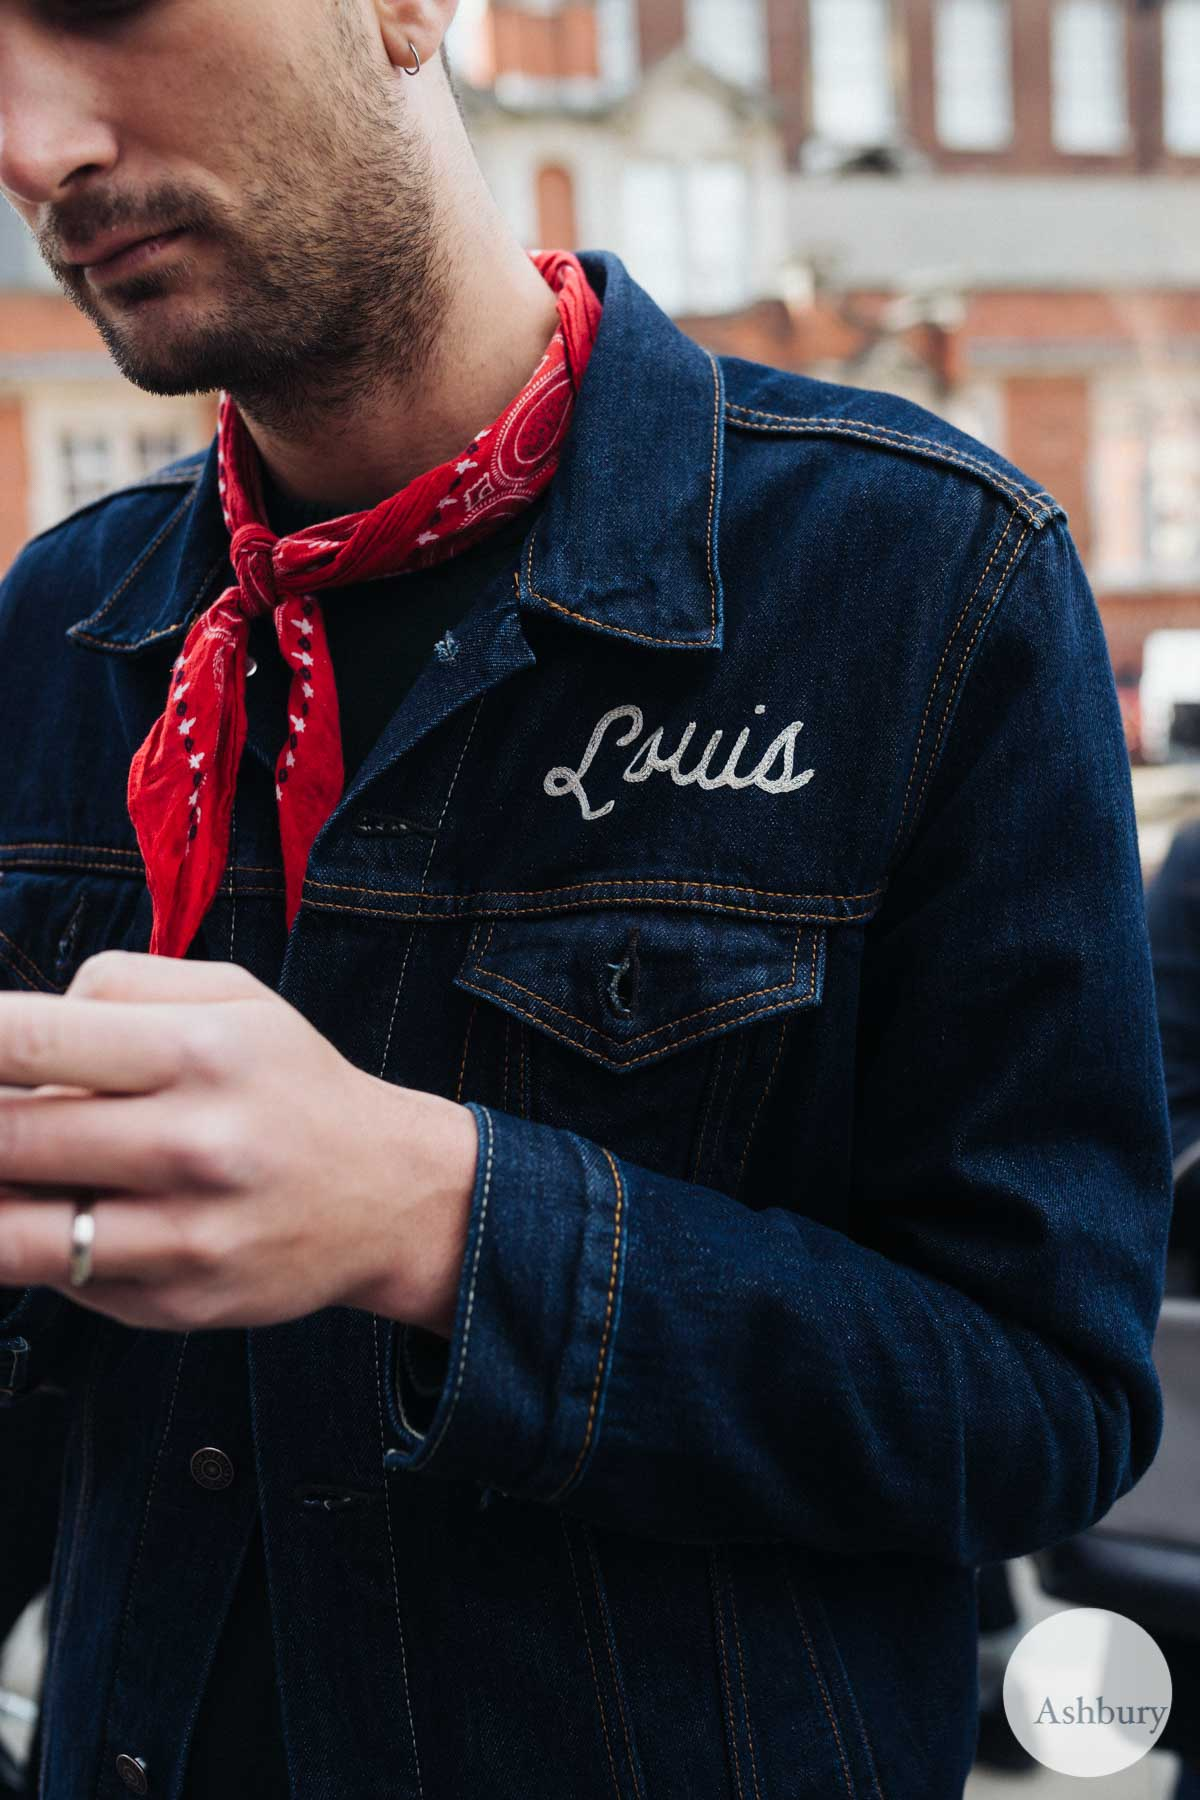 london street fashion men